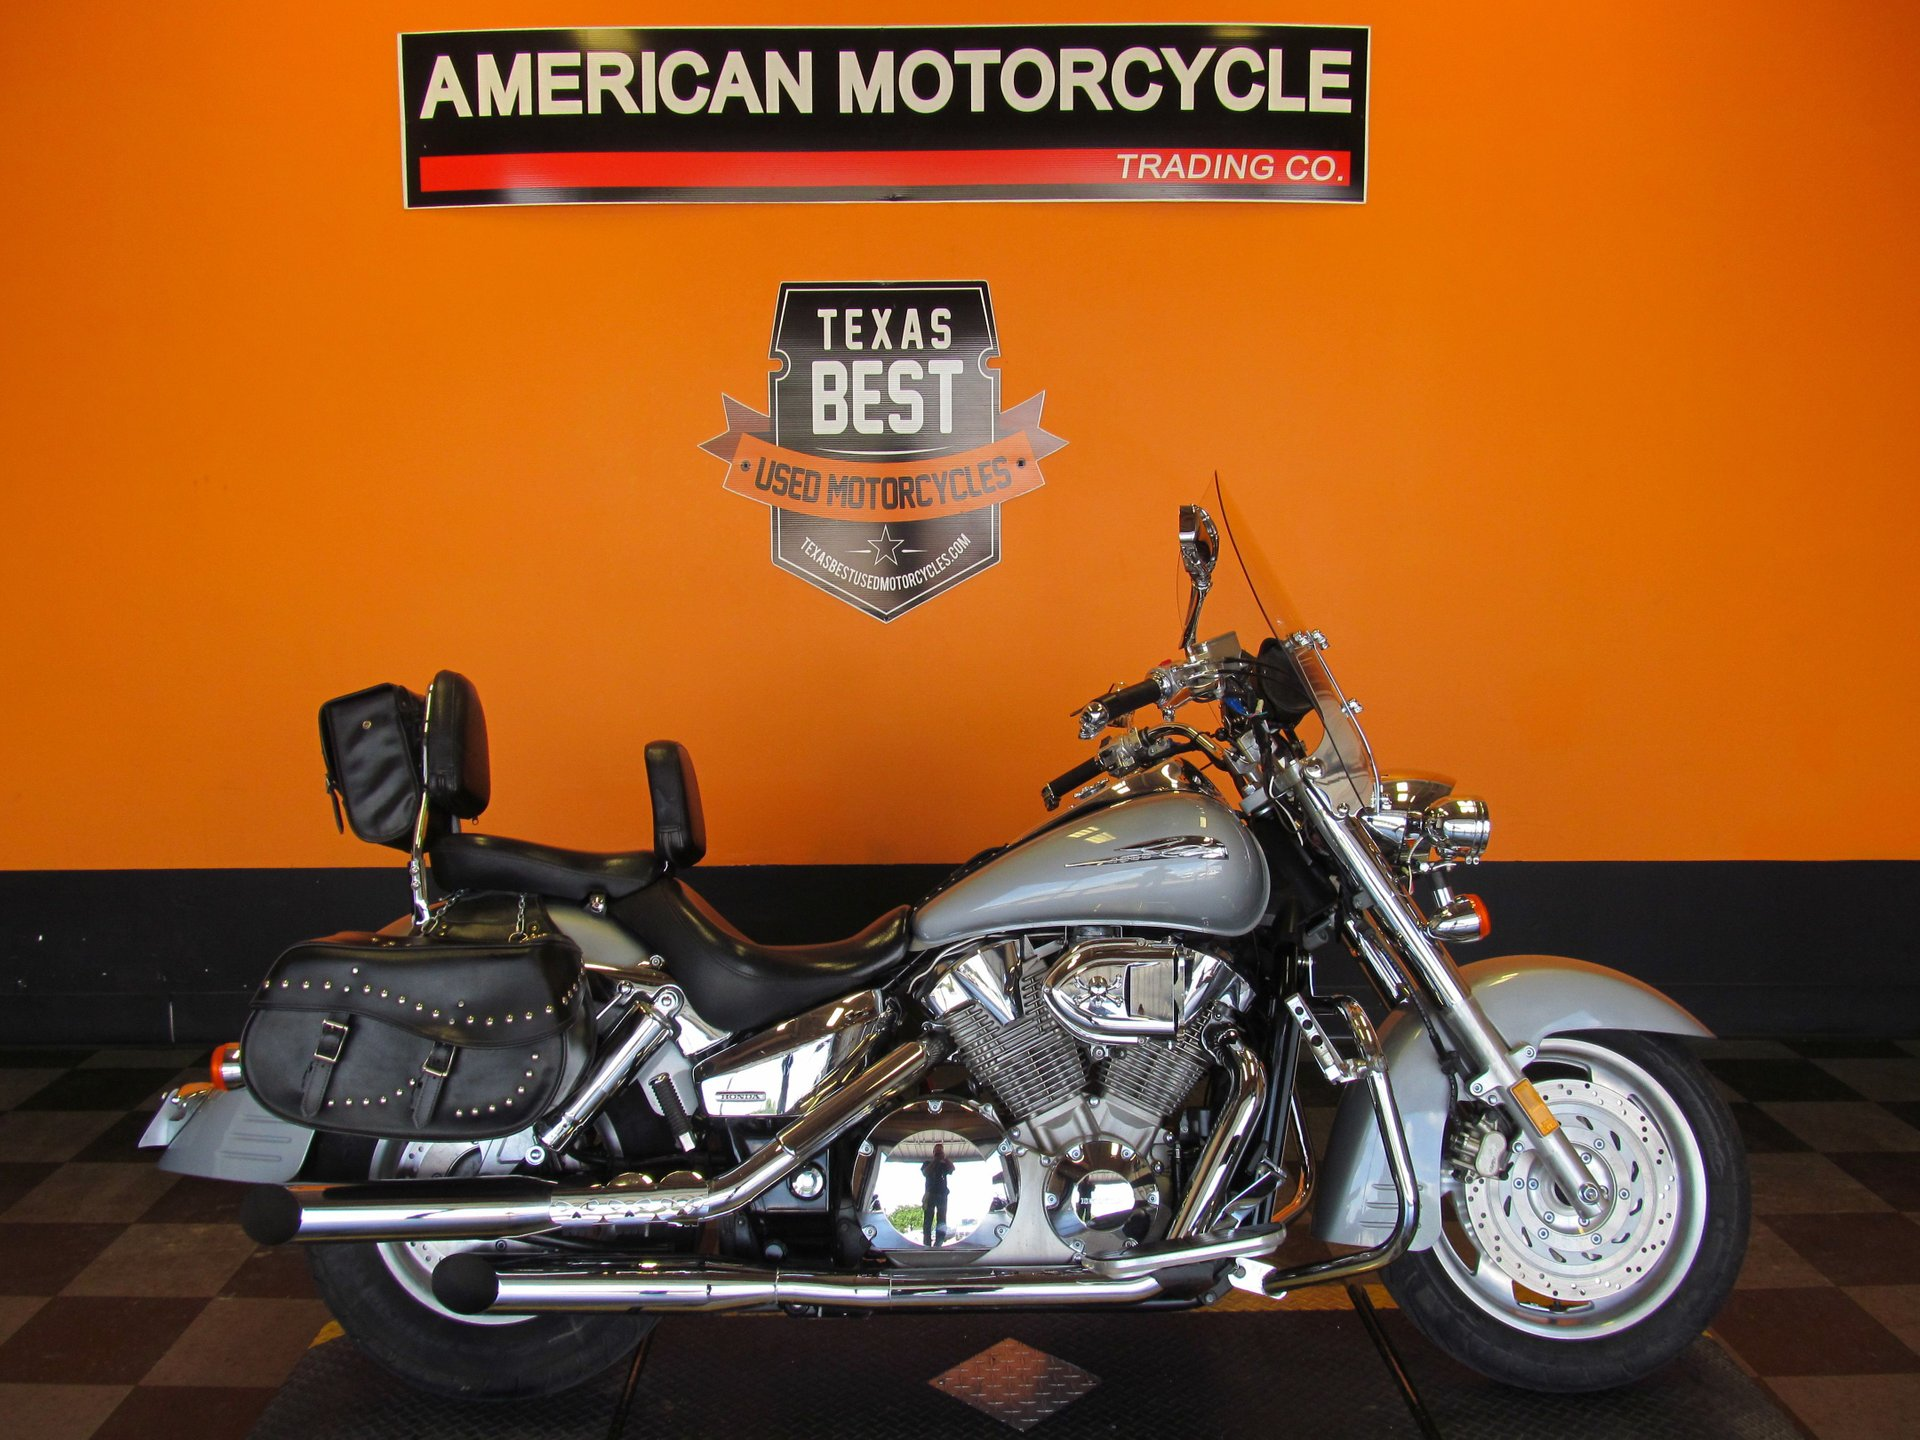 2005 honda shadow vtx1300r